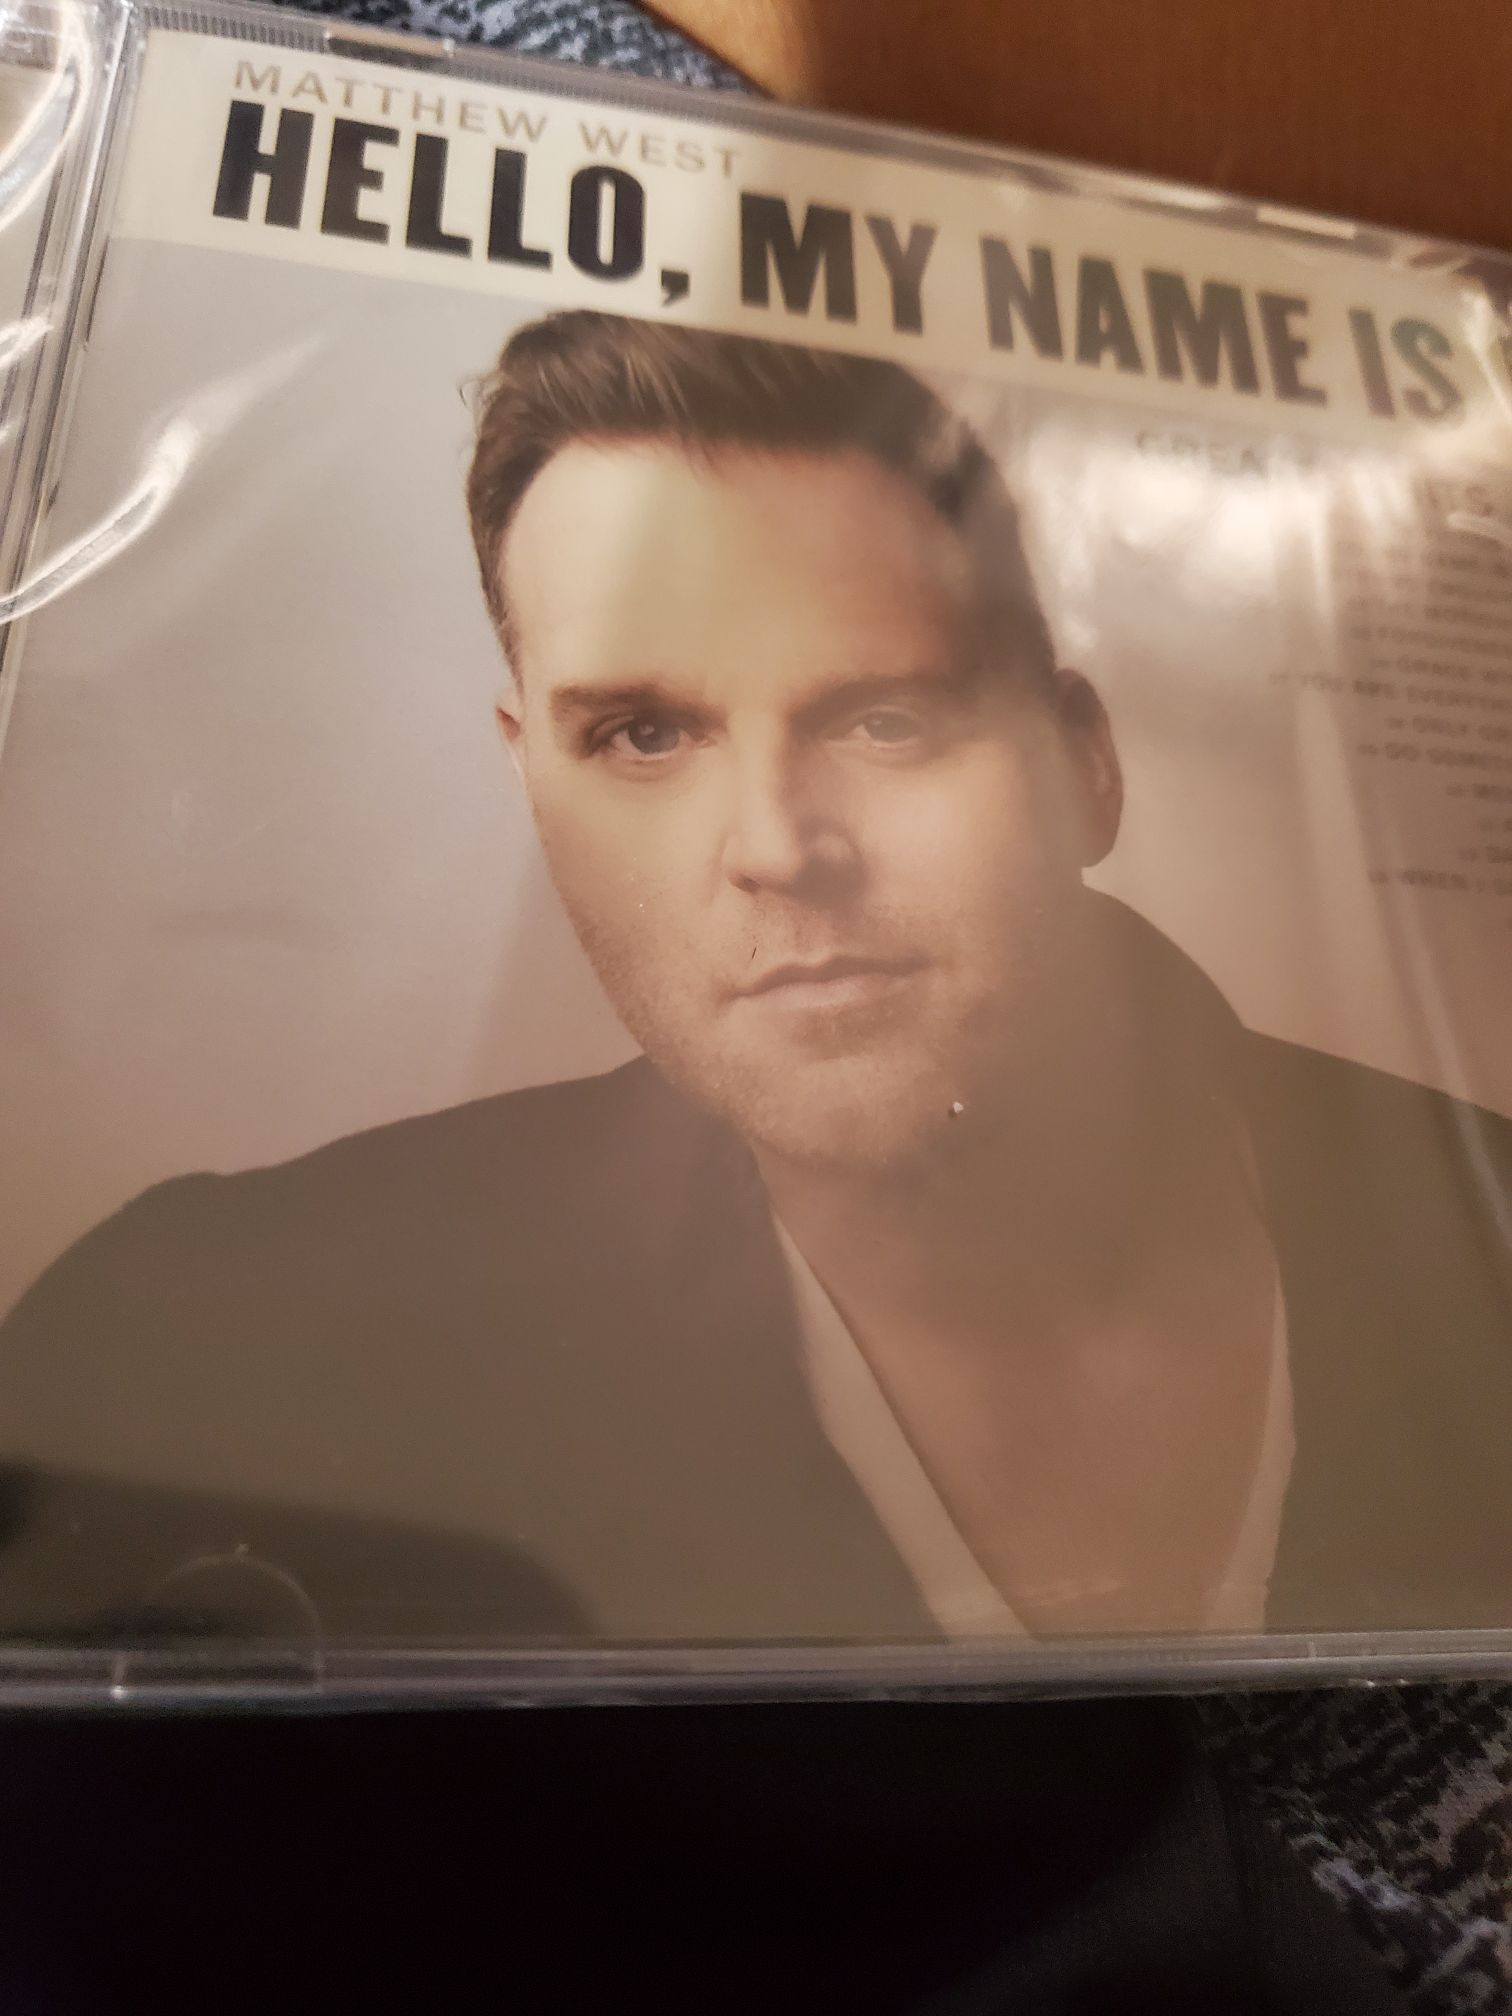 Matthew West • Hello My Name Is • Greatest Hits2019 Sparrow Records •••• - CD cover